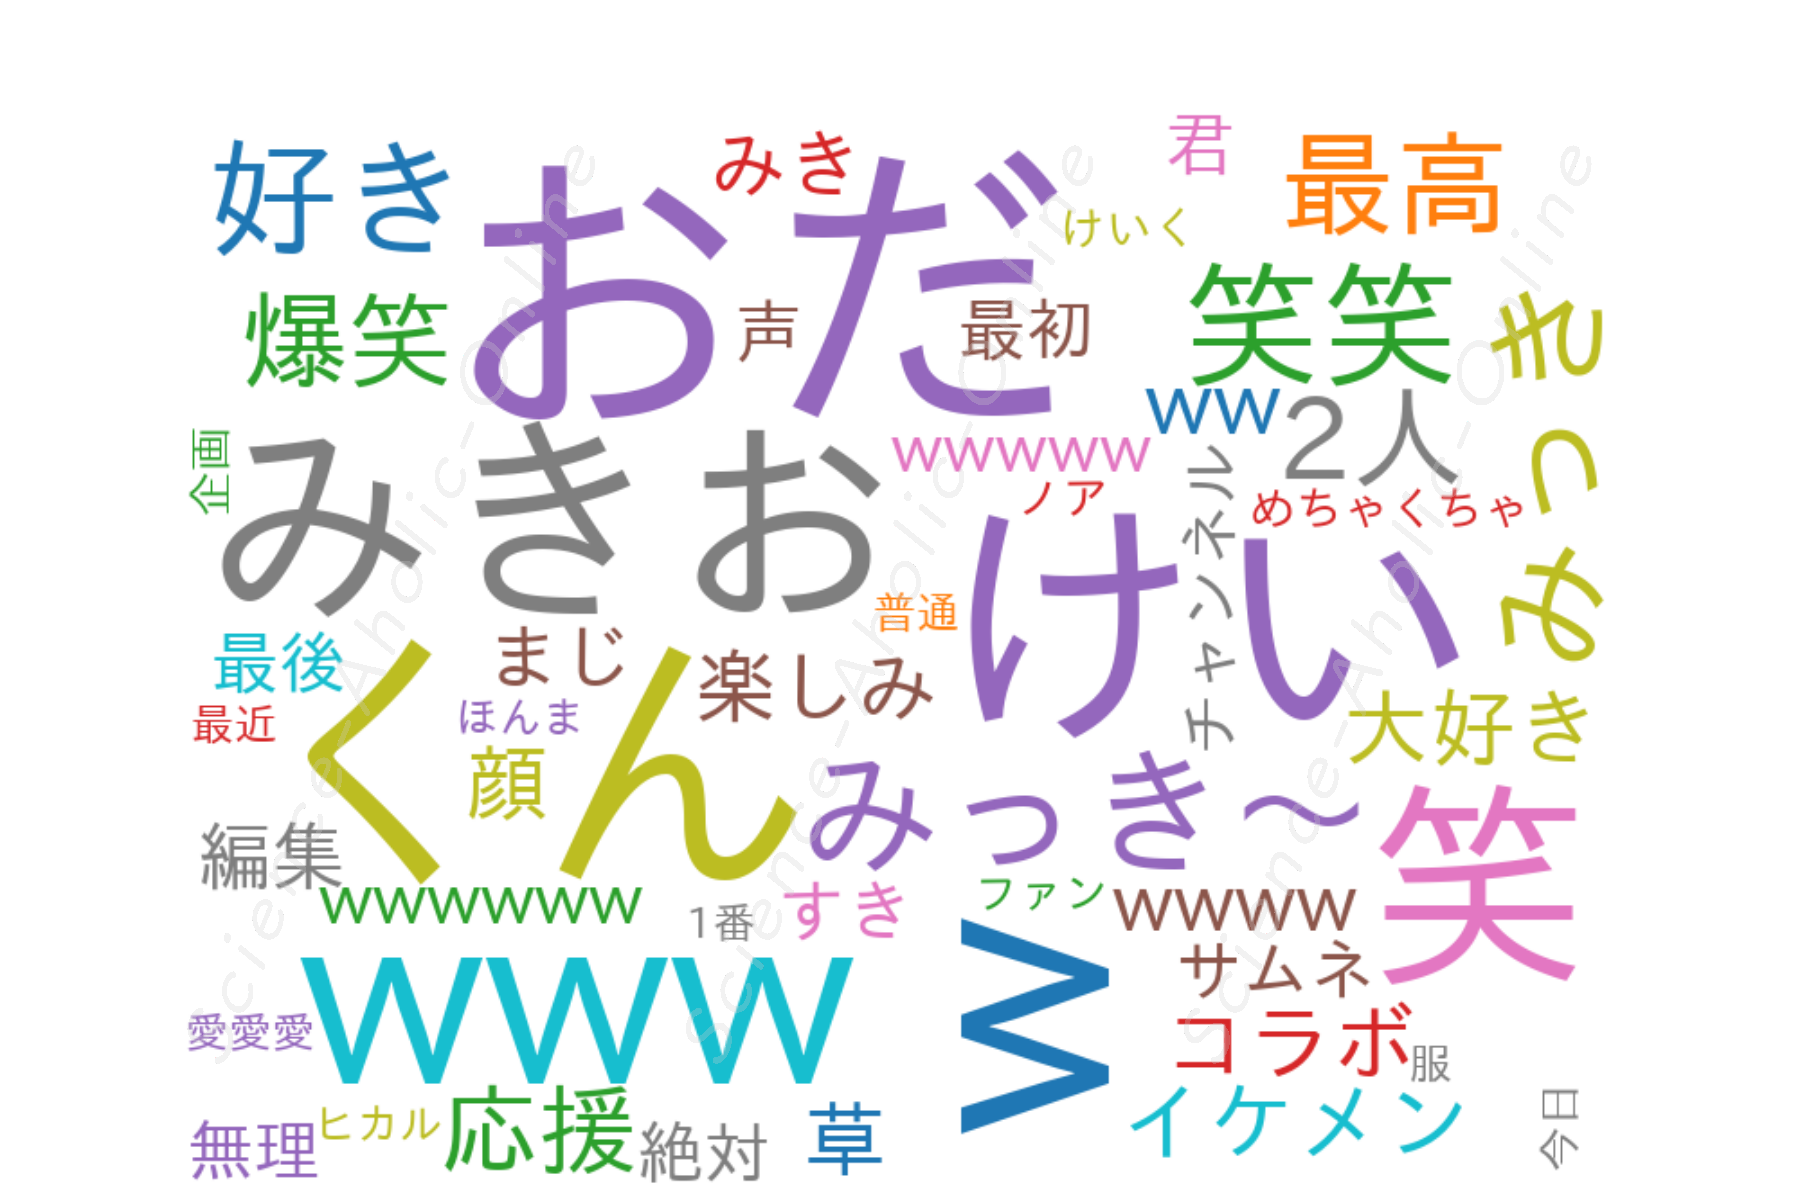 https://science-aholic-online.com/wp-content/uploads/2020/08/wordcloud_みきおだ【MIKIODA】.png